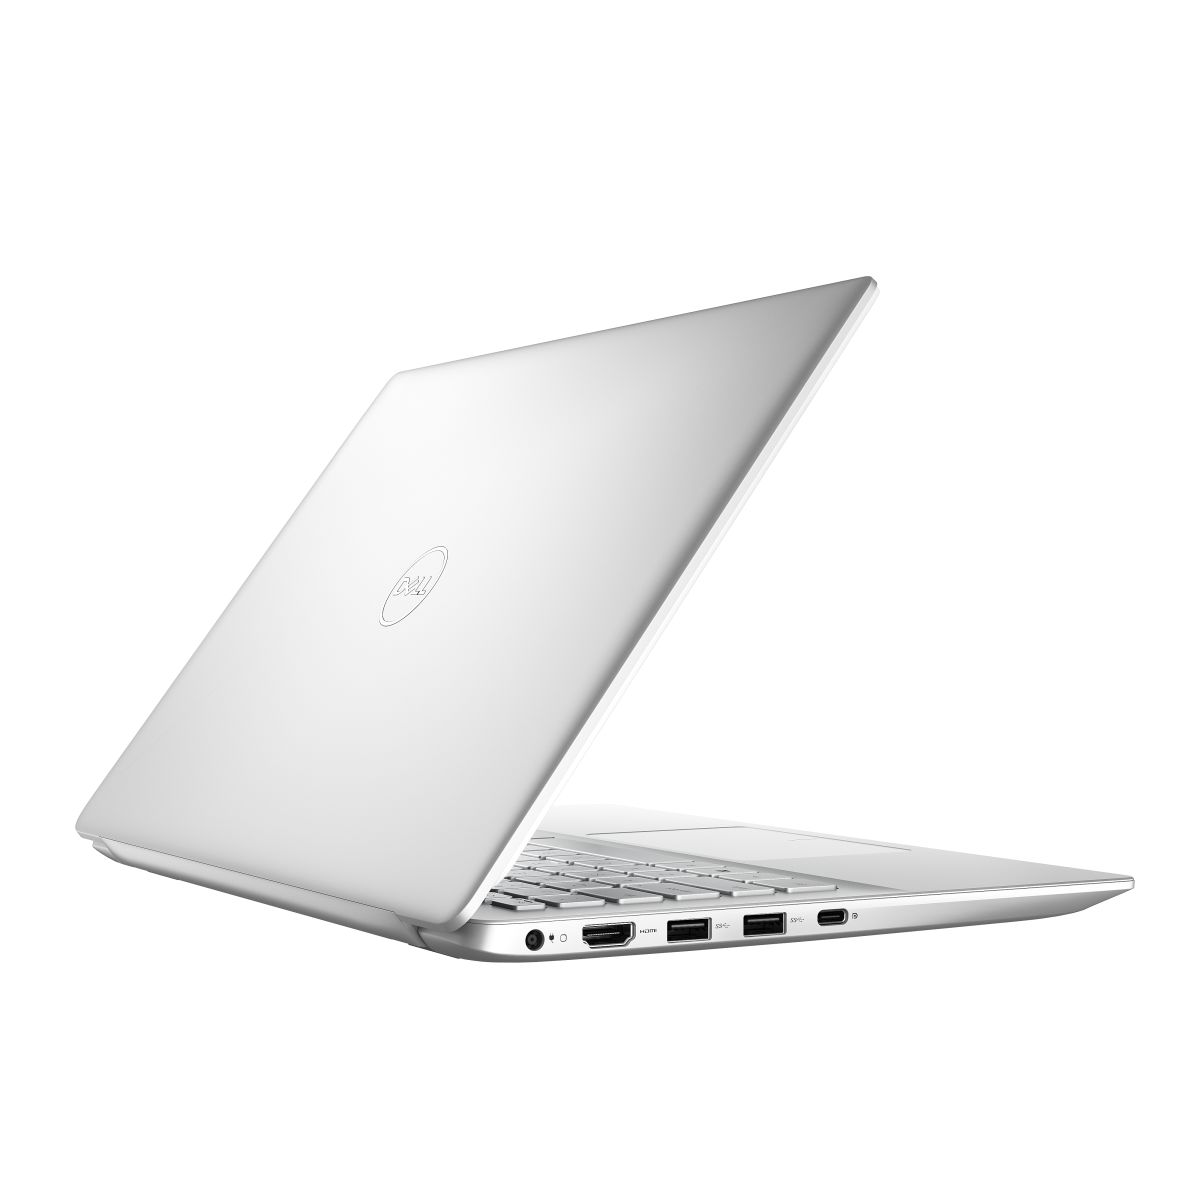 [New Arrival] Dell Inspiron 14 - 5490 Laptop Intel Core 10th Gen i7-10510U 8GB RAM 	512GB M.2 SSD	NVIDIA GeForce MX230 with 2GB GDDR5	Windows 10 Home 14.0inch FullHD Platinum Silver,Dell Backpack ,Wireless mouse dell 1 year onsite warranty